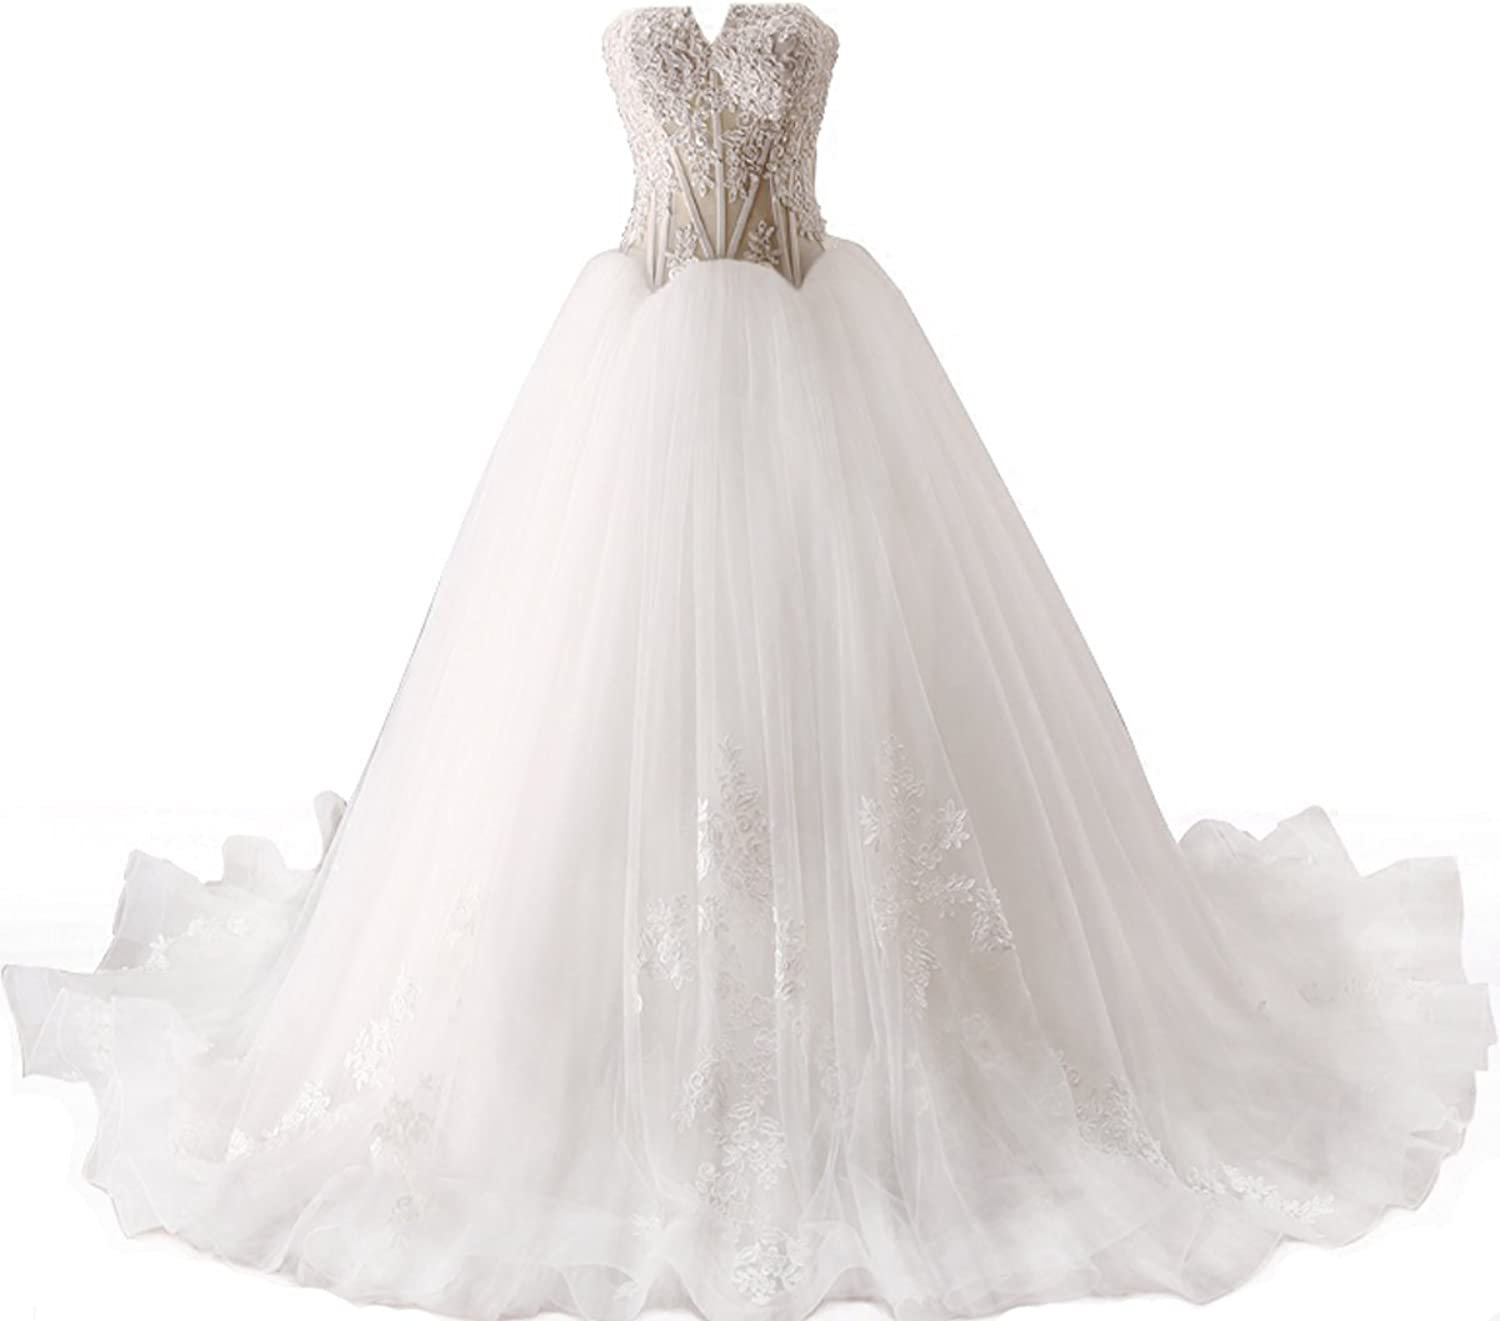 XPLE Women's Elegant White Tulle Off The Shoulder Sweetheart Neckline Appliqued Wedding Dresses Lace Up Bridal Gowns D011